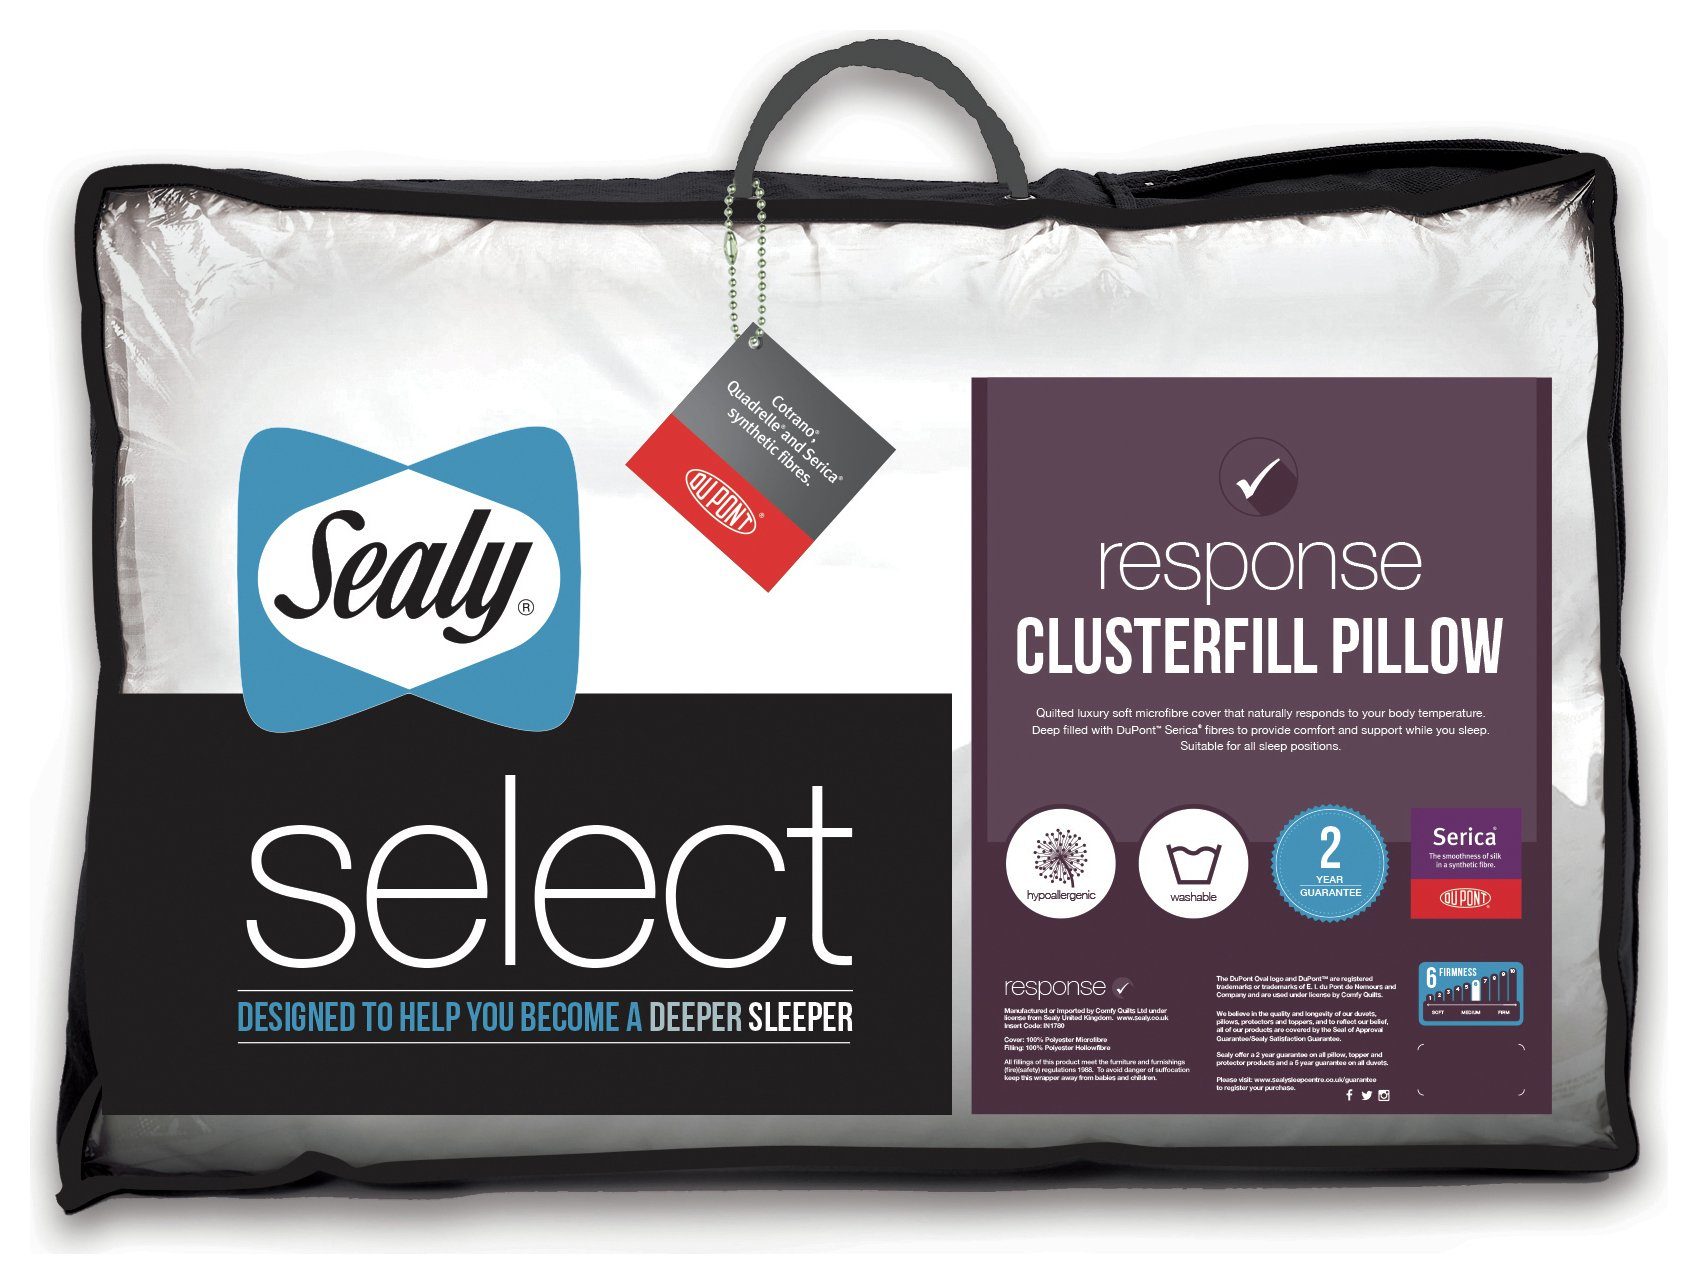 sealy clusterfill pillow.